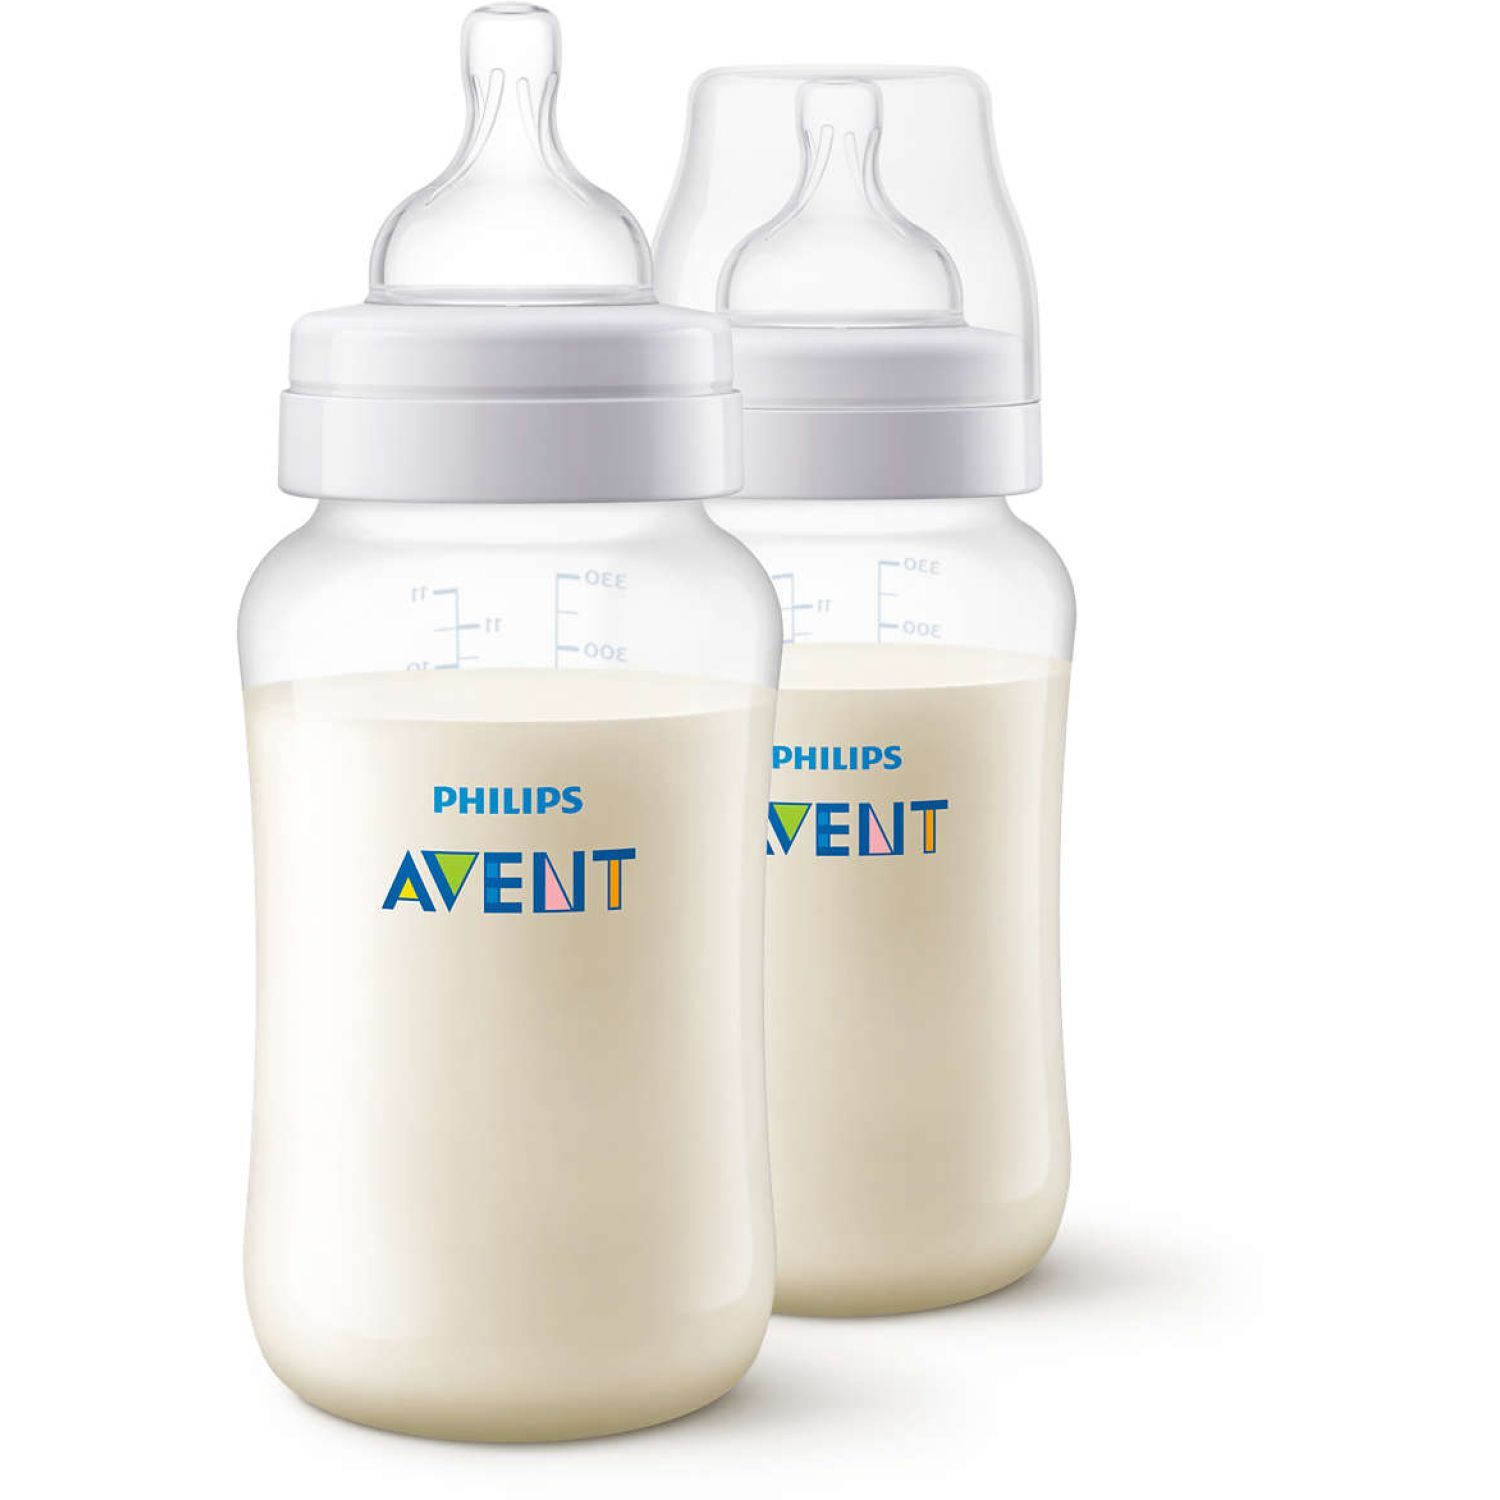 PHILIPS AVENT Biberon Anticolic 330 Ml Twin Pack Transparente Biberones